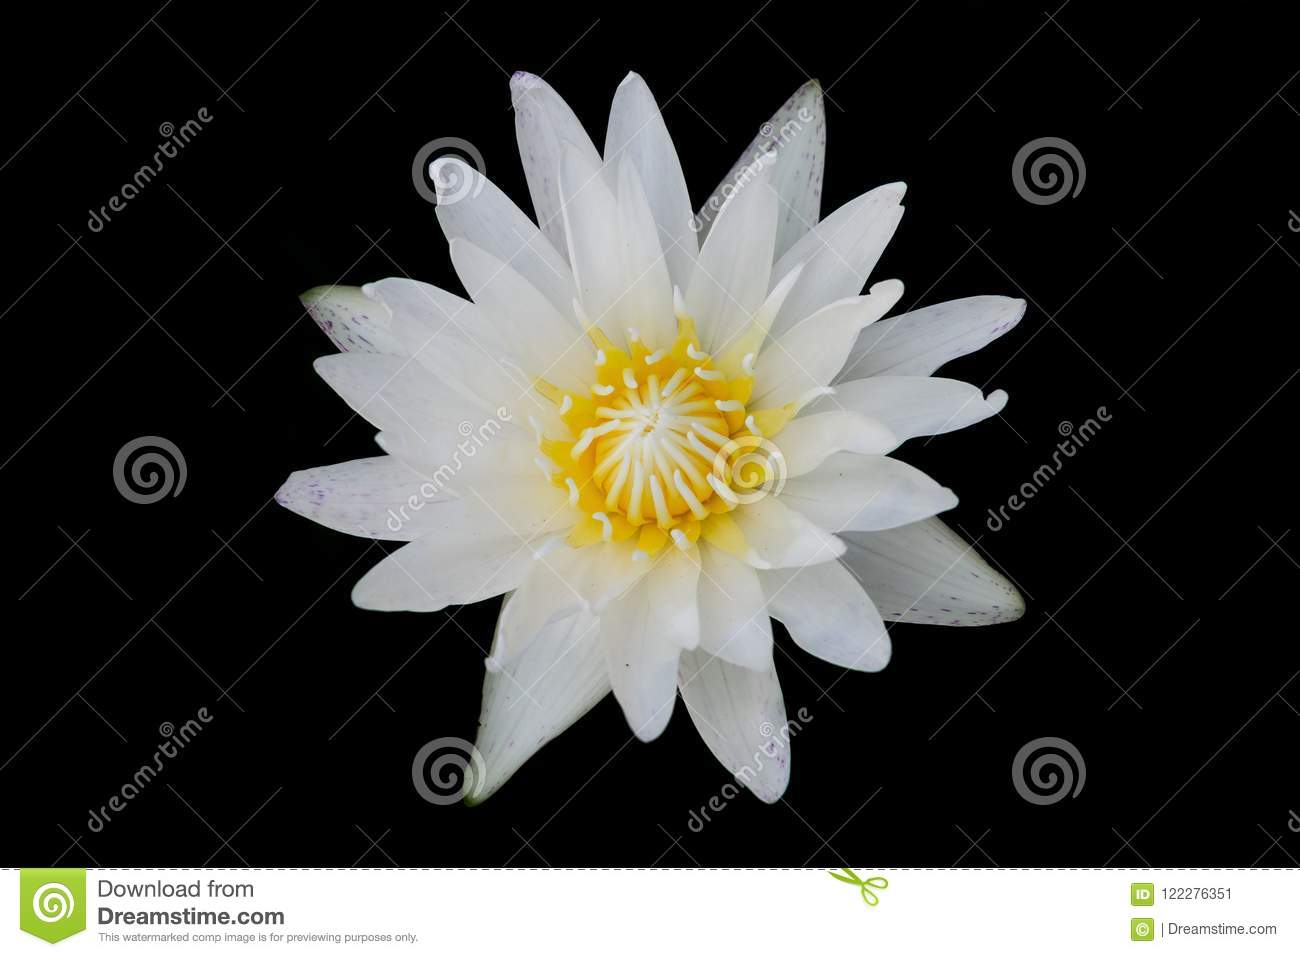 Top view of lotus flower stock image image of black 122276351 download top view of lotus flower stock image image of black 122276351 izmirmasajfo